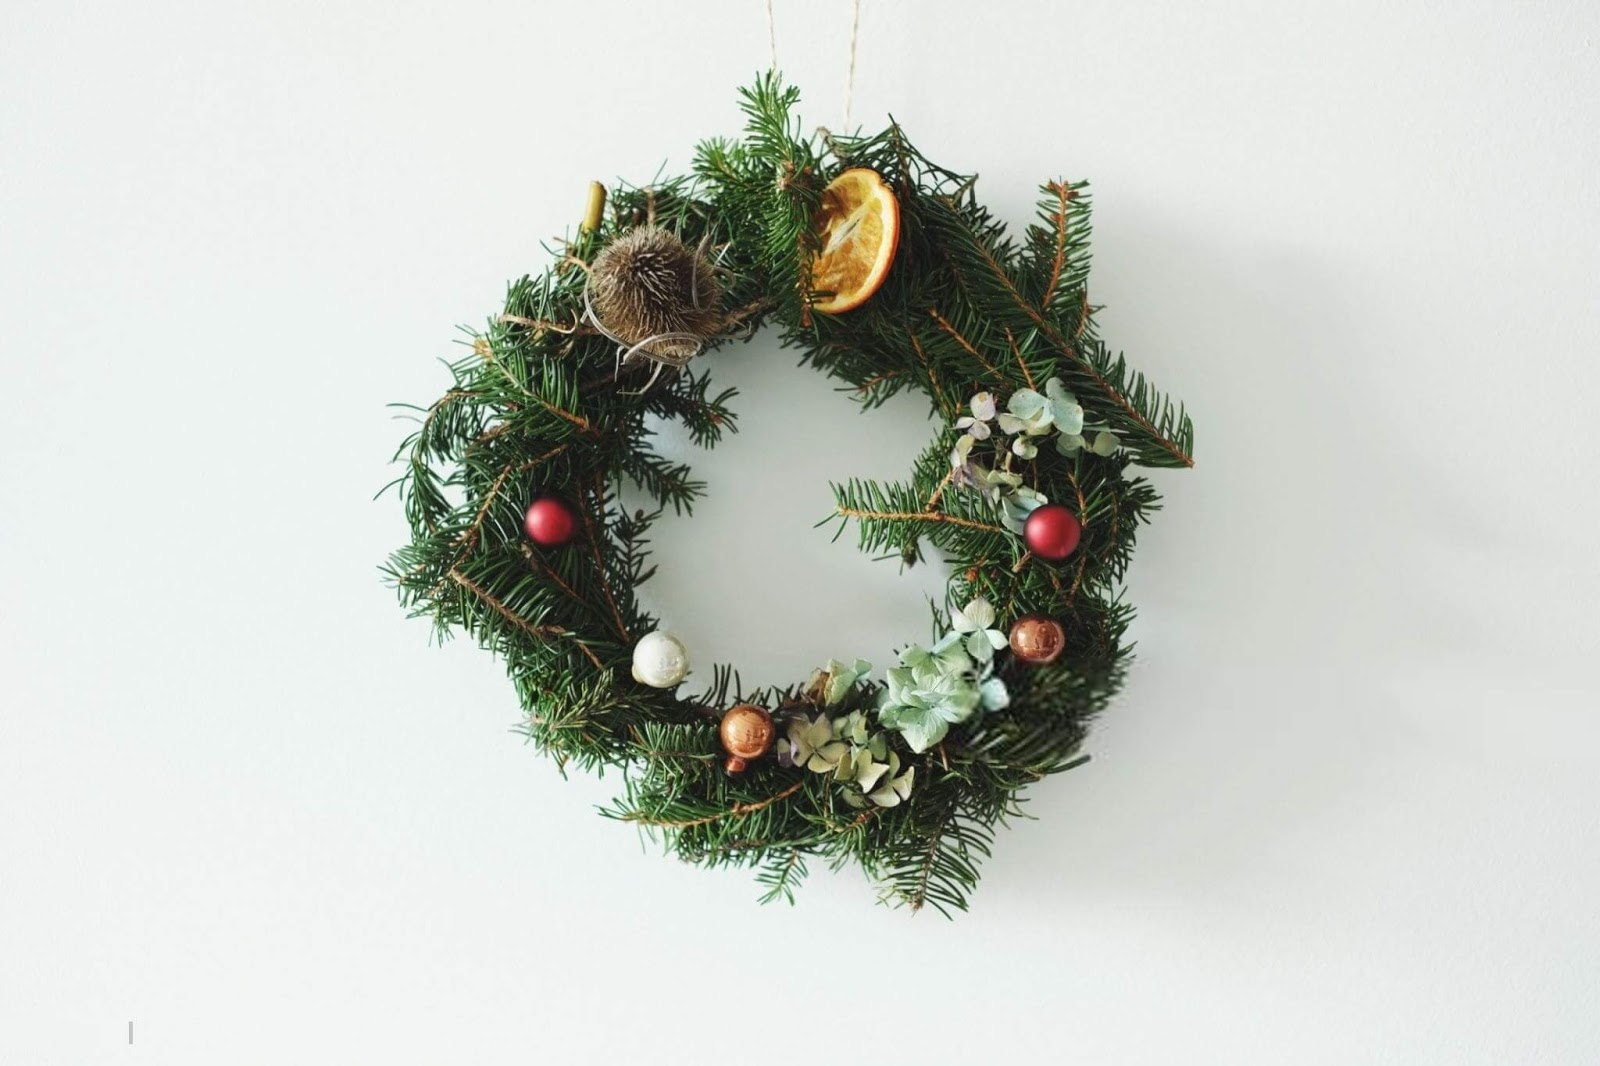 Images of Christmas Wreaths